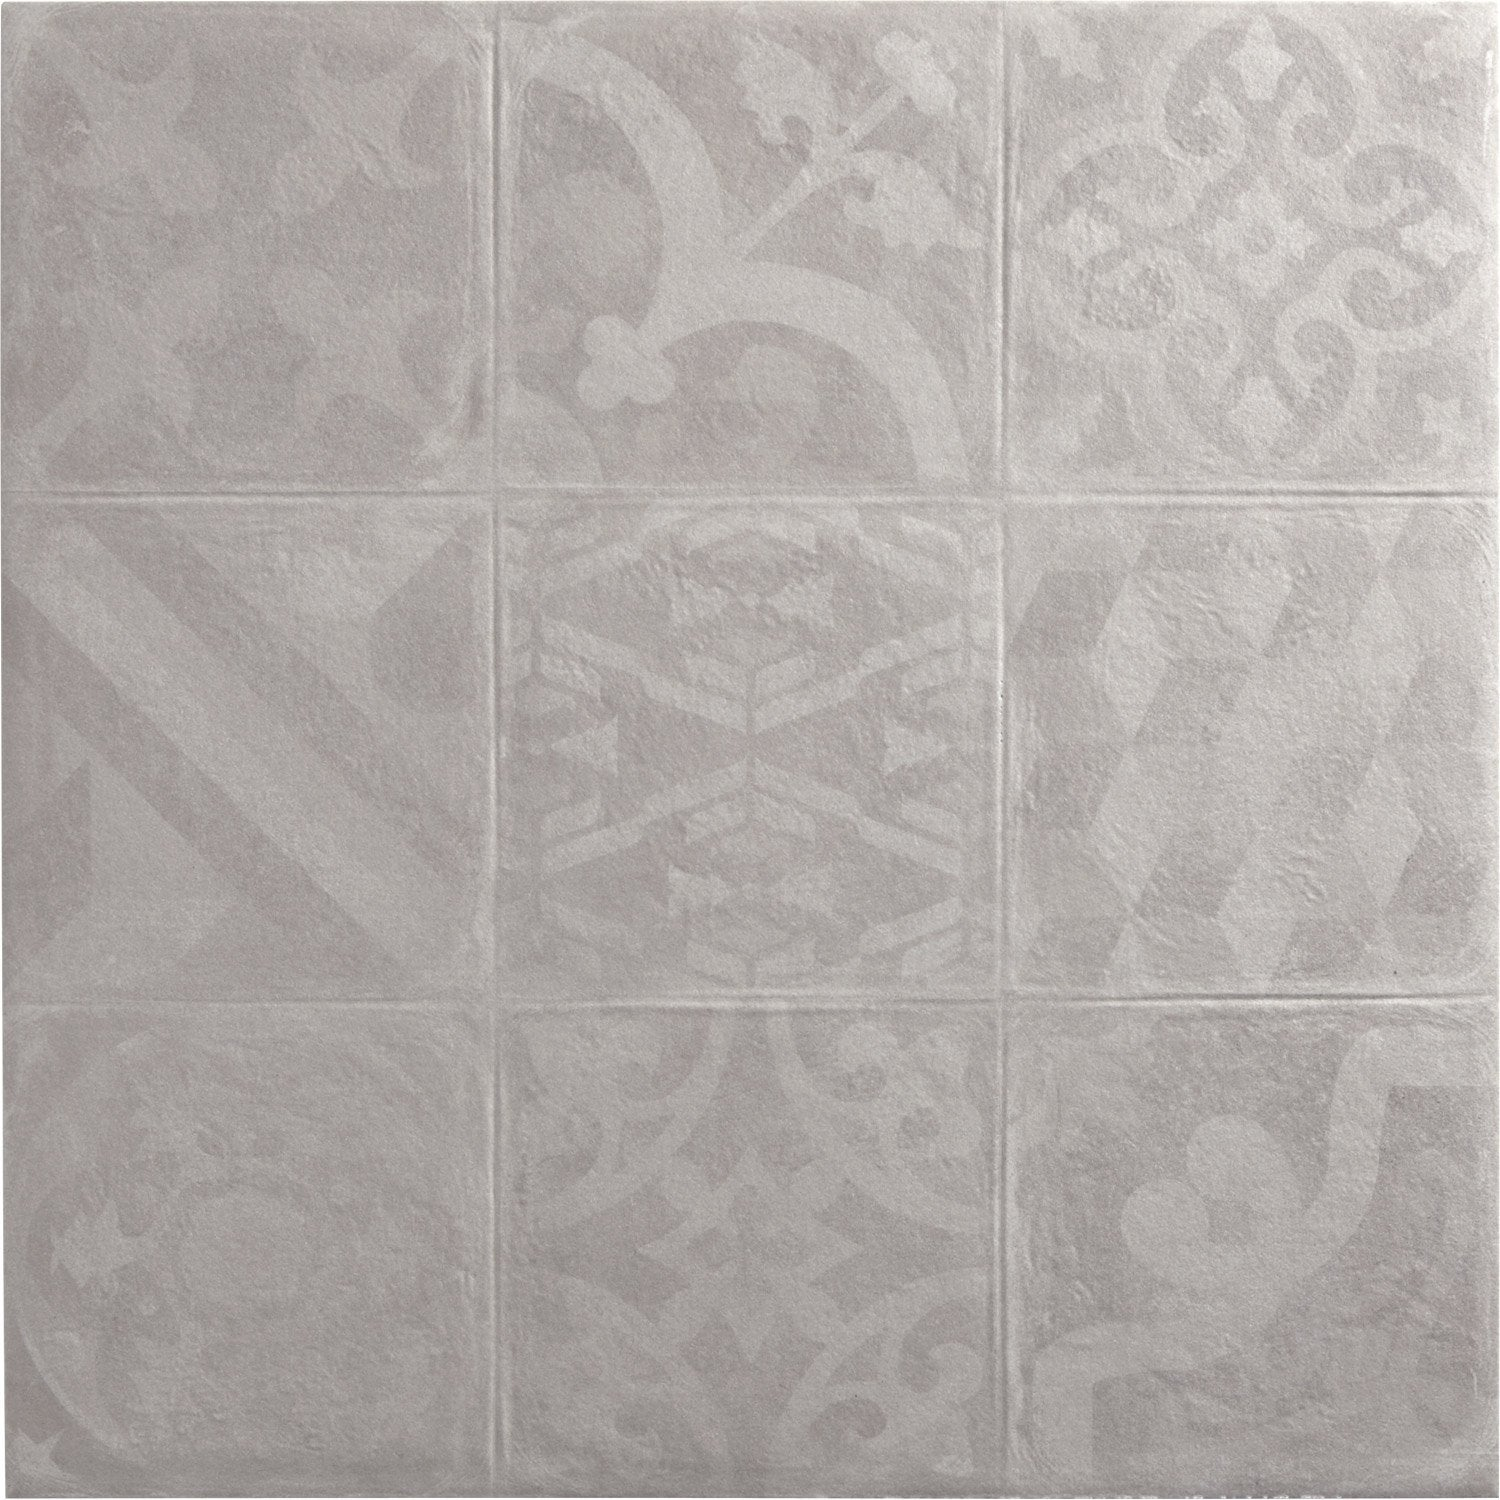 Carrelage design carrelage effet ciment moderne design for Ciment carrelage